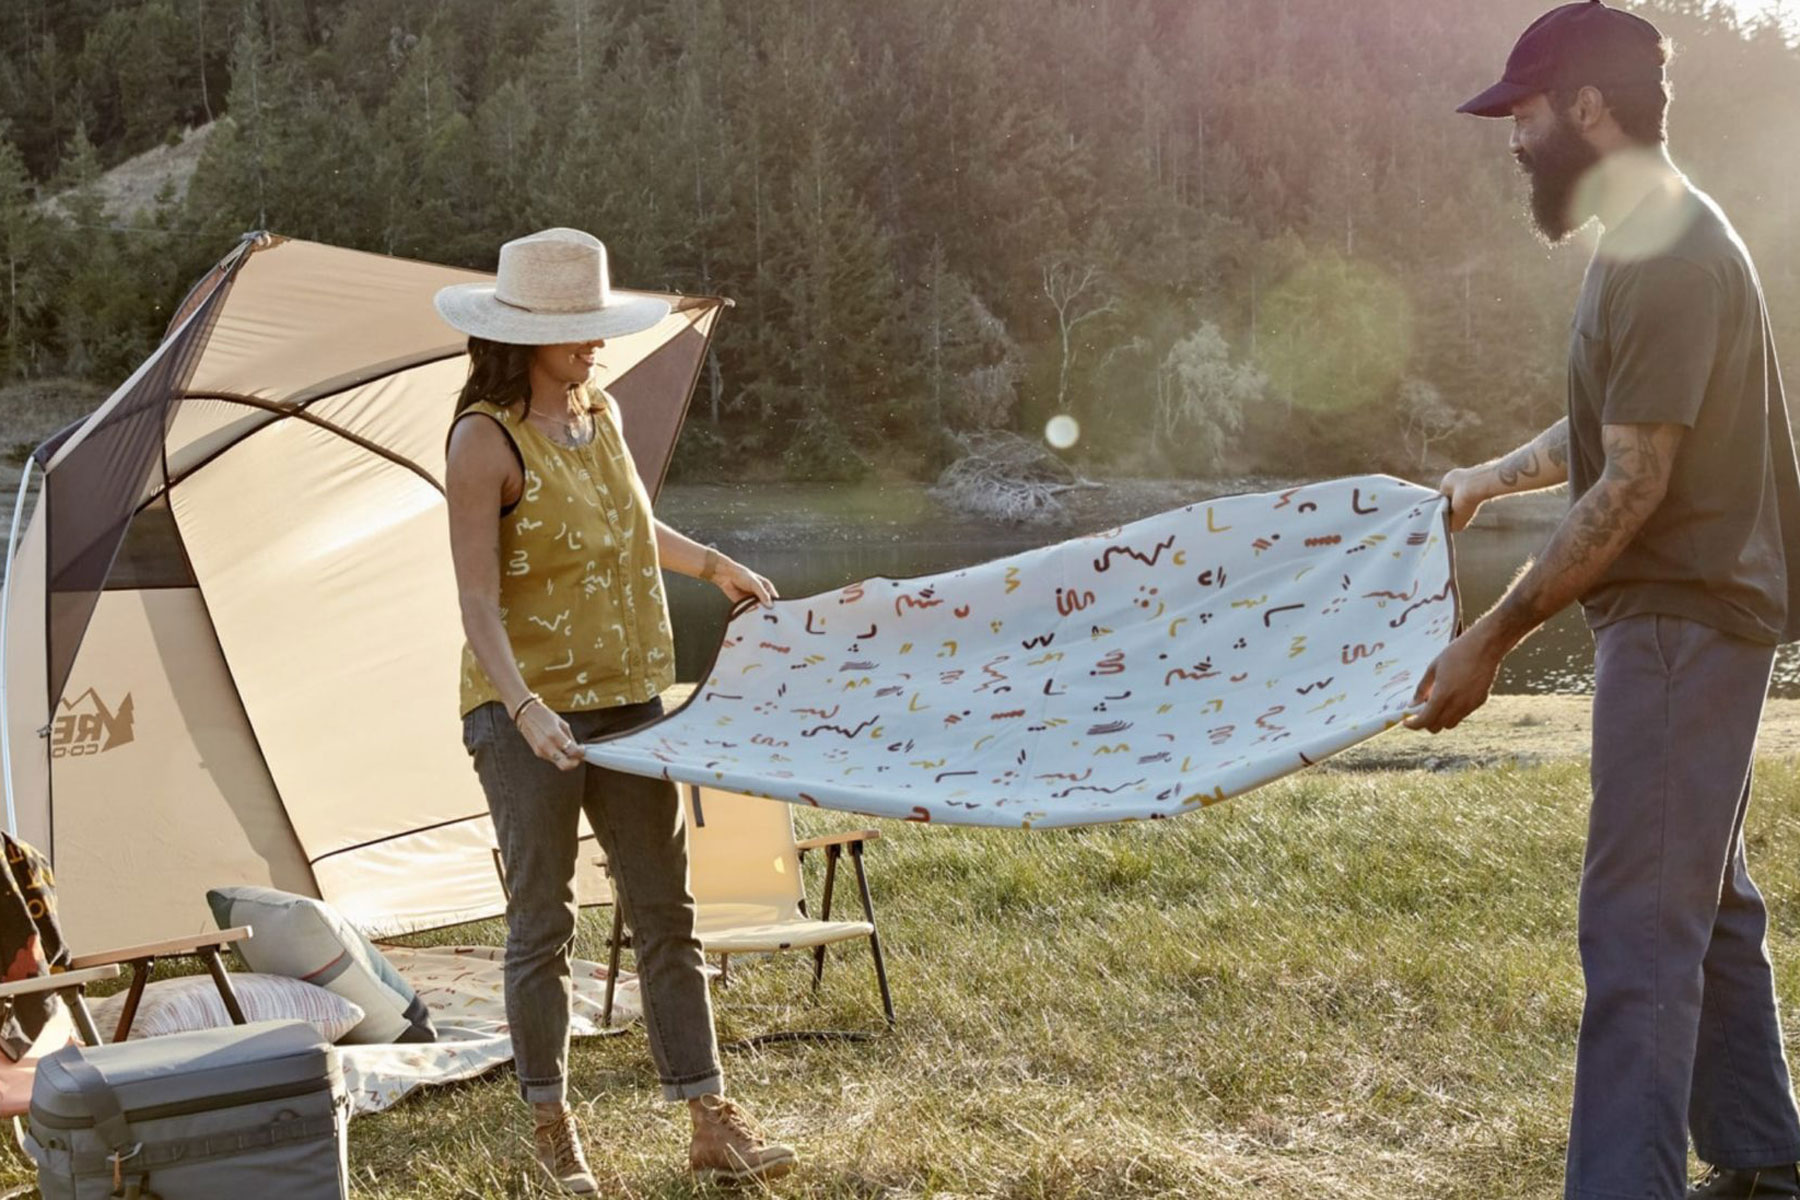 couple sets up outdoor and camping supplies